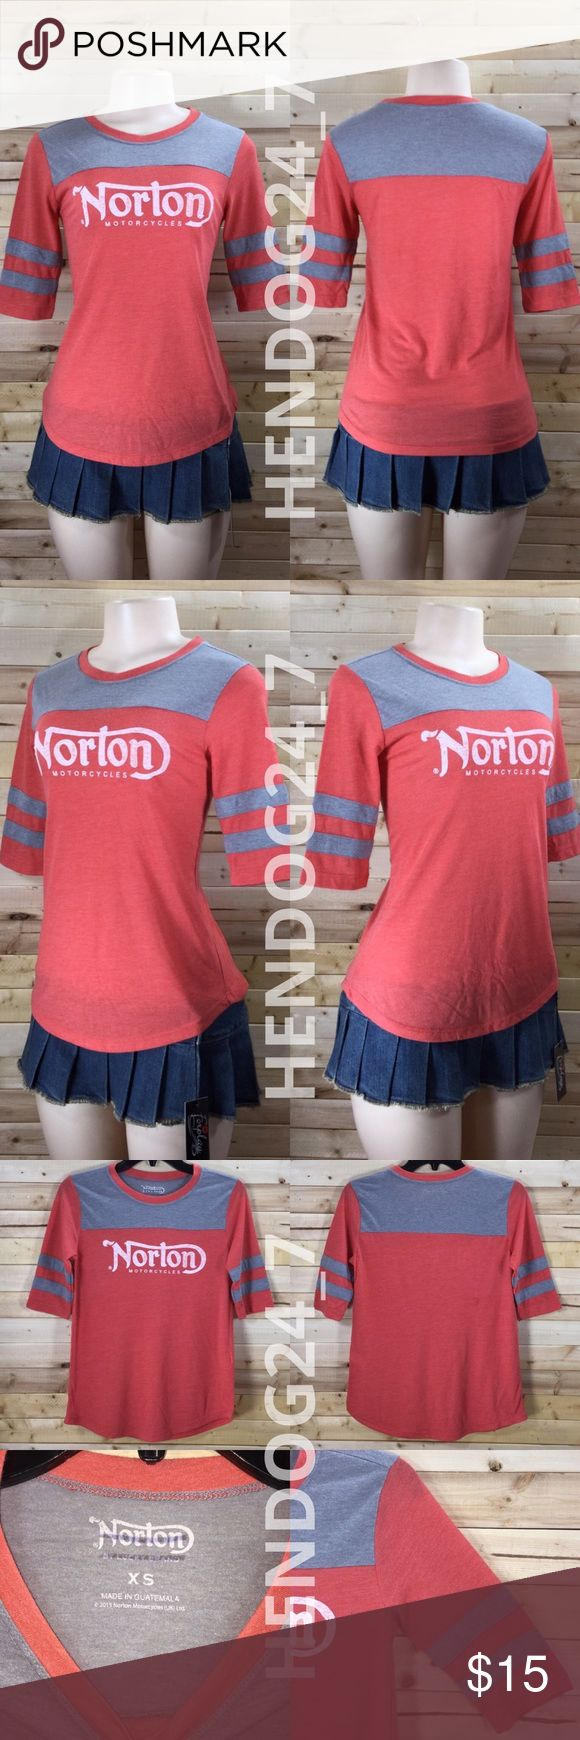 """LUCKY BRAND NORTON MOTORCYCLES WOMENS TEE SZ XS-XL NEW WITHOUT TAGS - NEVER WORN -CLOSEOUT-OVERSTOCK ITEMS, LINE THRU INSIDE BRAND LABEL/TAG.  LUCKY BRAND NORTON MOTORCYCLES WOMEN'S TEE BASEBALL RAGLAN TEE • 3/4 SLEEVES • COLOR: ORANGE / GRAY CREW NECK • U-SHAPED HEM • 50% POLYESTER-37% MODAL-13% COTTON  SIZES XS-XL MEASUREMENTS: •XS (16"""" PIT-PIT, 32"""" BUST, 25"""" NECK-HEM) •S (18"""" PIT-PIT, 36"""" BUST, 25.5"""" NECK-HEM) •M (18.5"""" PIT-PIT, 37"""" BUST, 26"""" NECK-HEM) •L (19"""" PIT-PIT, 38"""" BUST, 27""""…"""